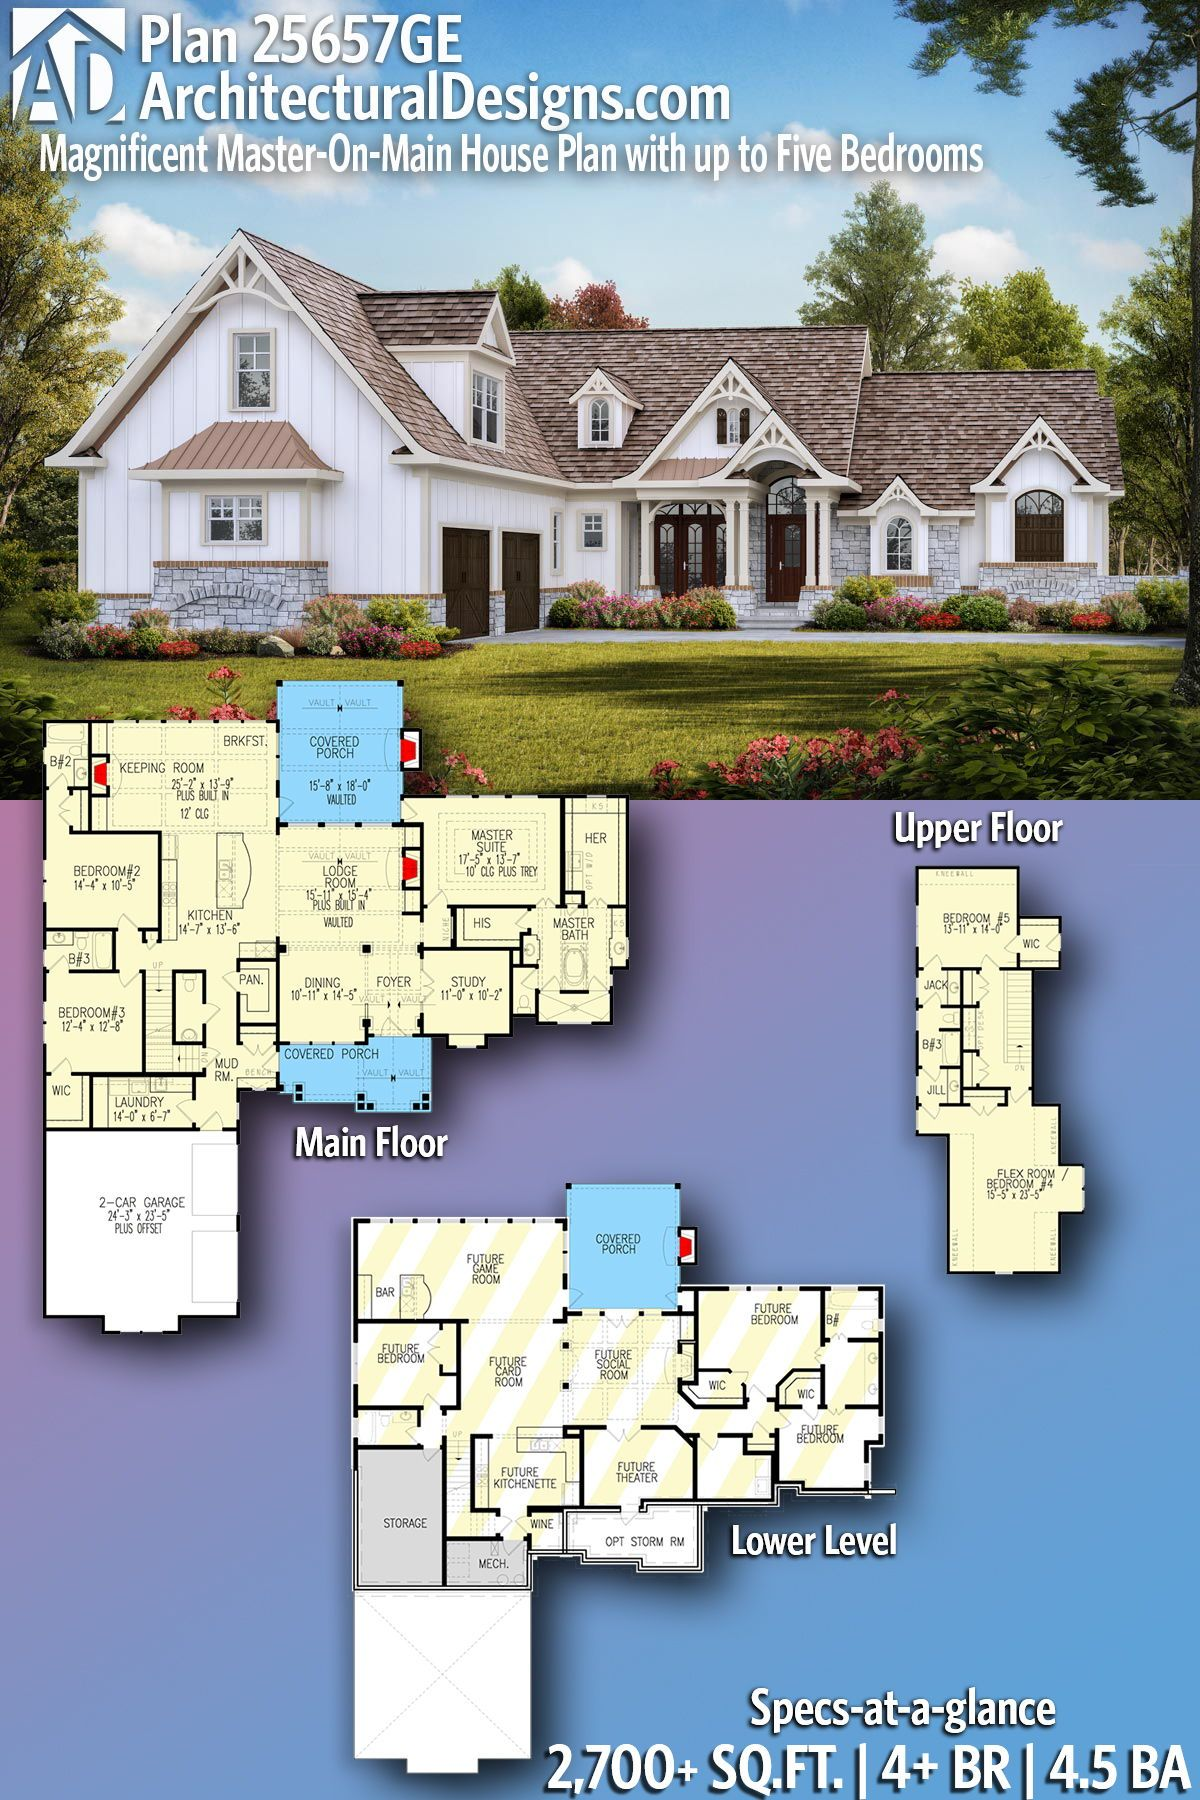 Plan 25657ge Magnificent Master On Main House Plan With Up To Five Bedrooms Maine House House Plans House